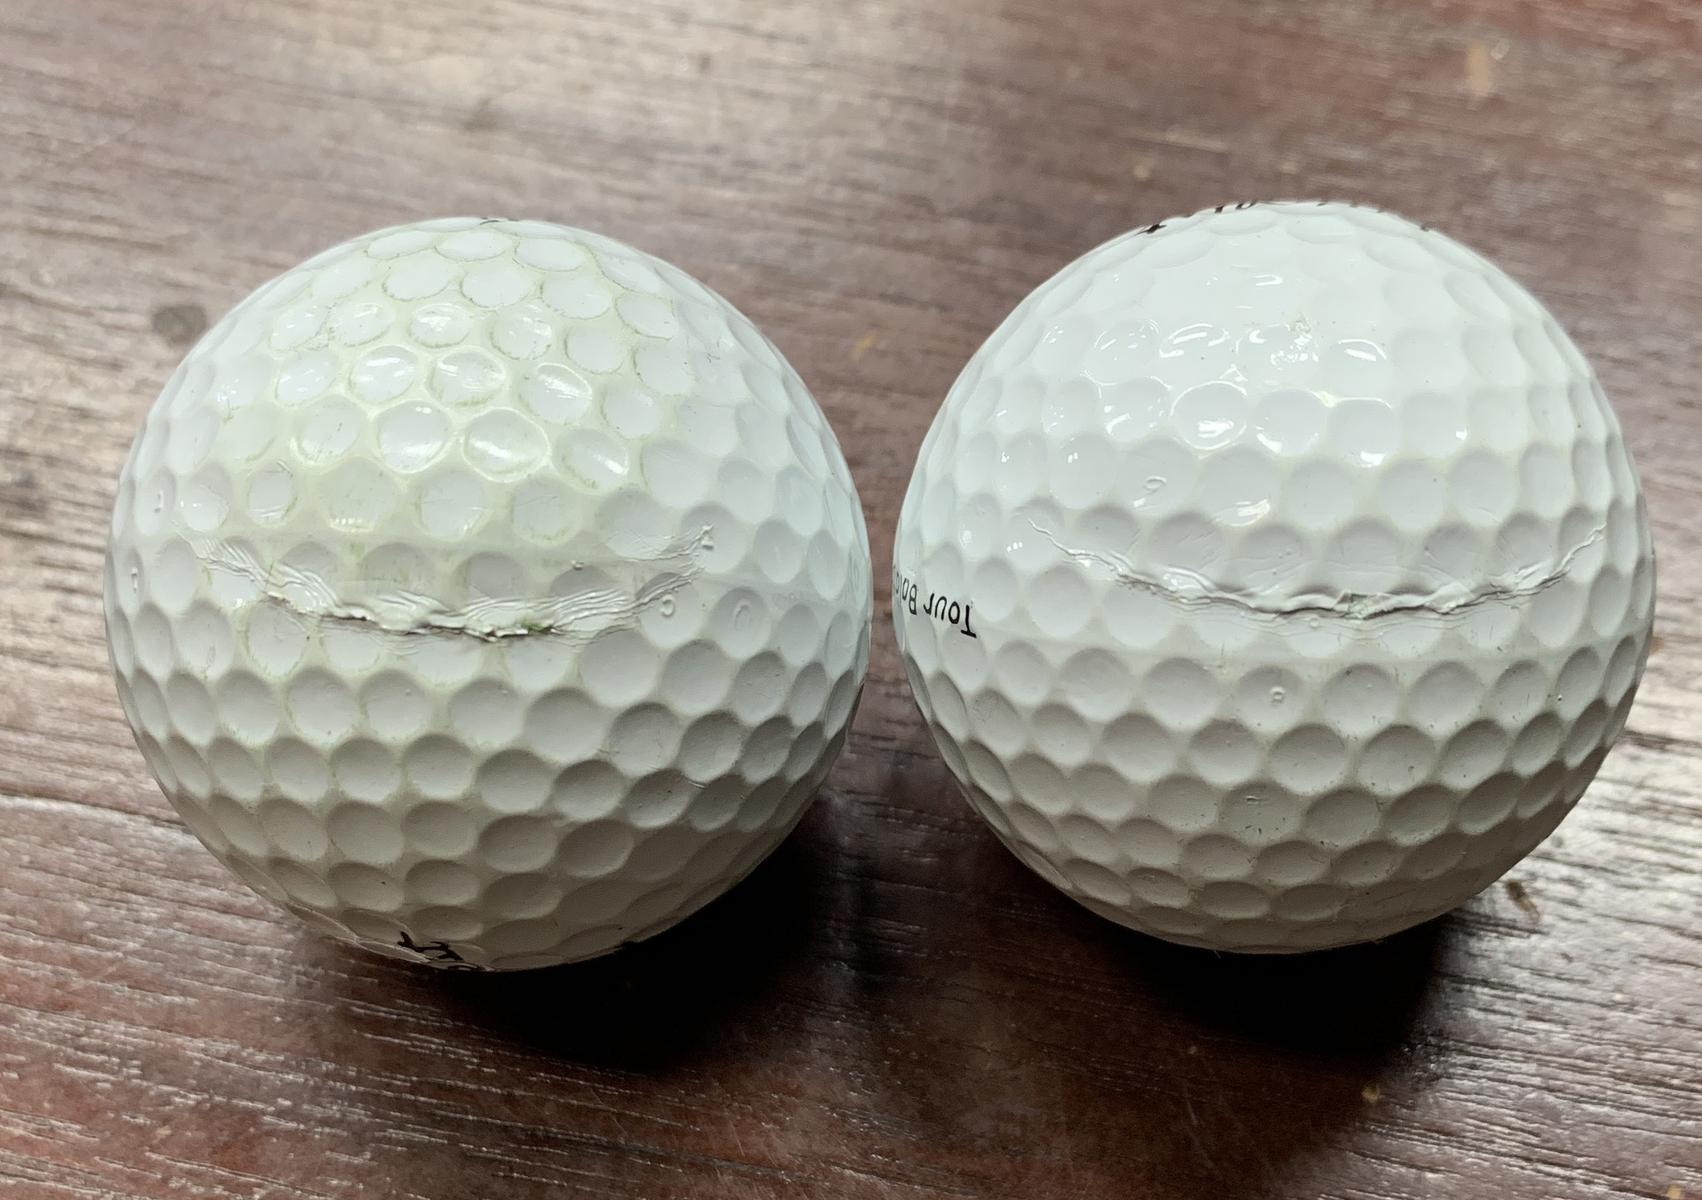 balata_smiley_golf_ball_two.jpg